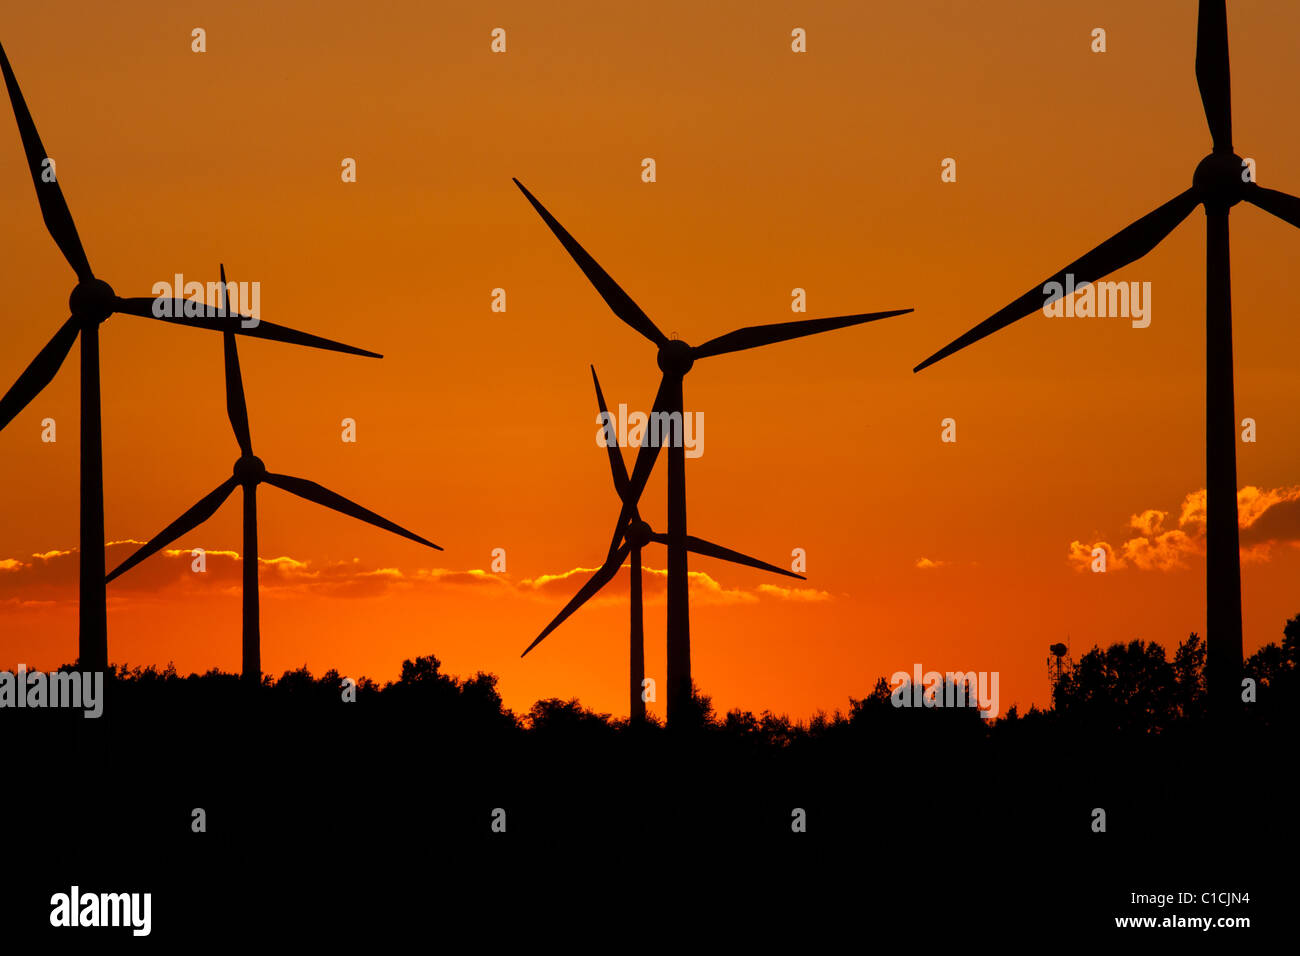 windmill silhouette on suset background stock photos windmill